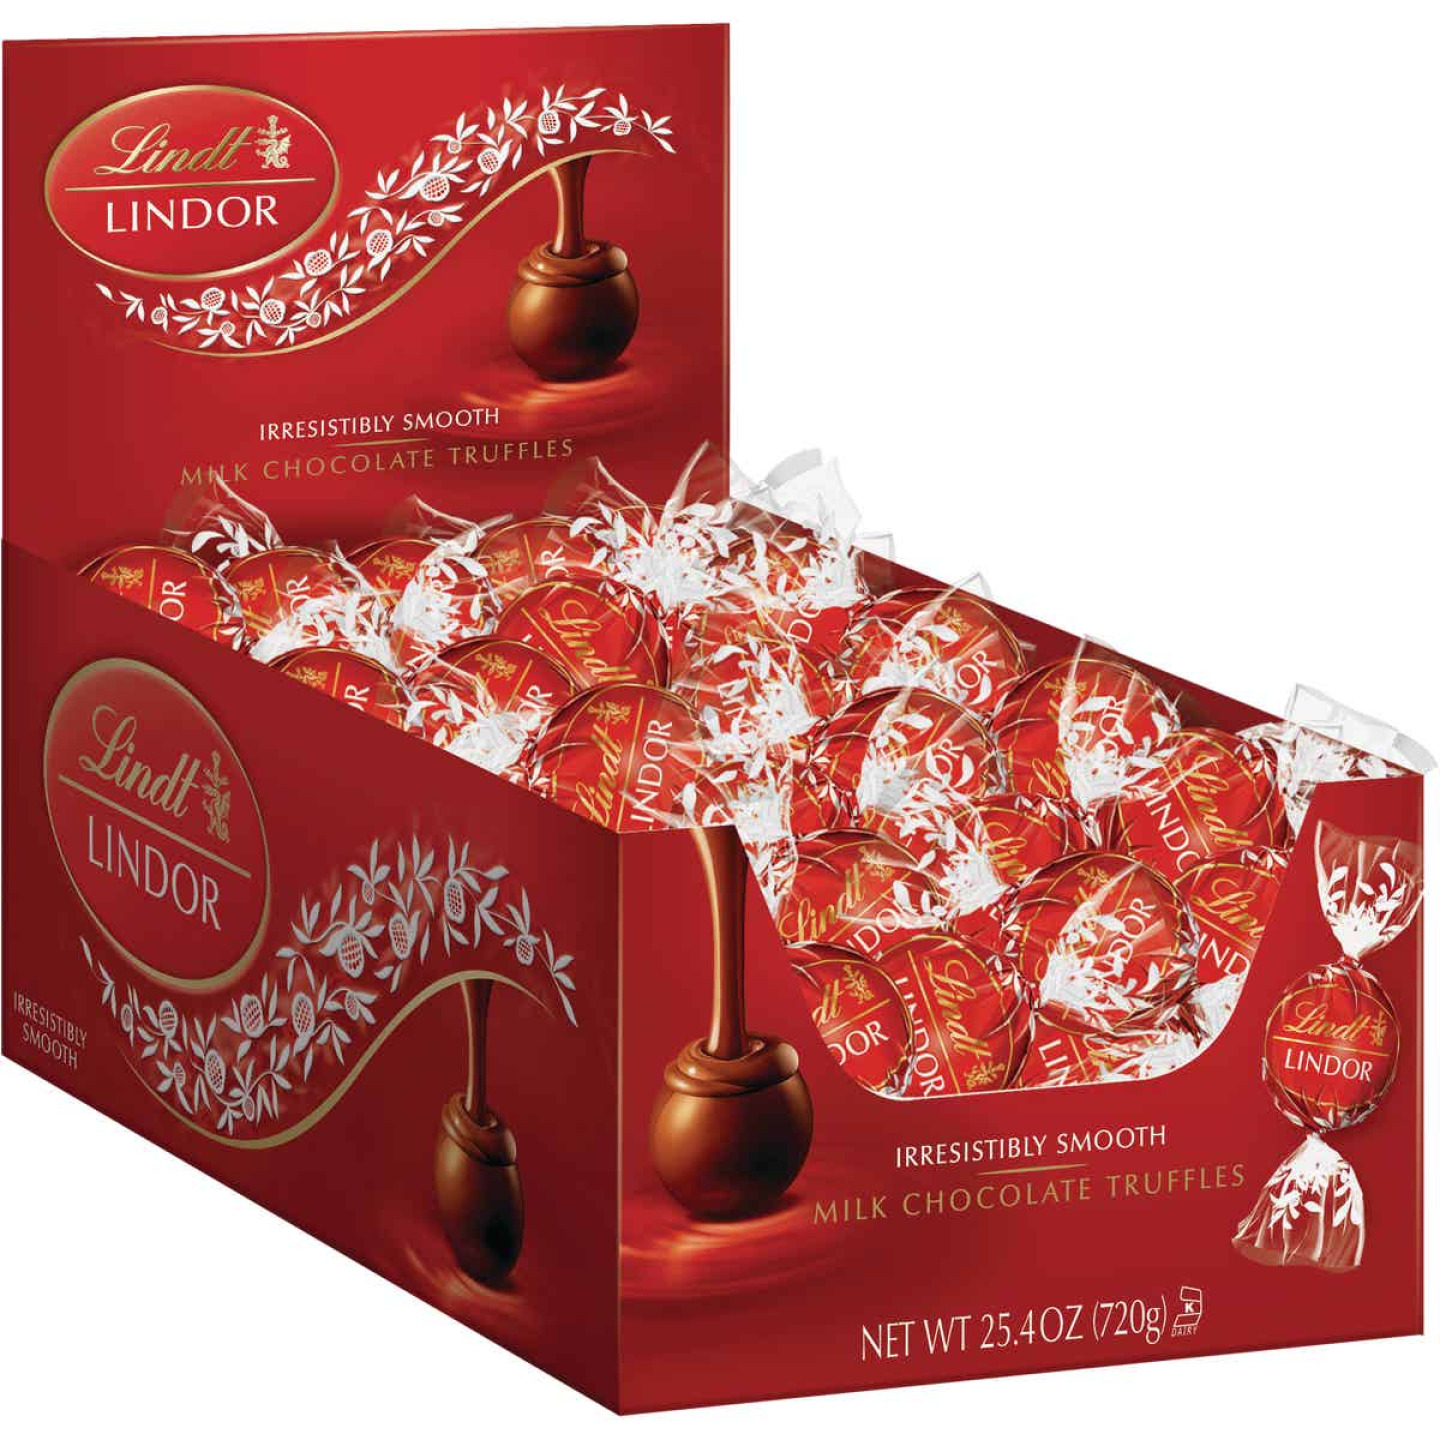 Lindt Lindor Milk Chocolate Truffle Changemaker Display (60-Count) Image 1